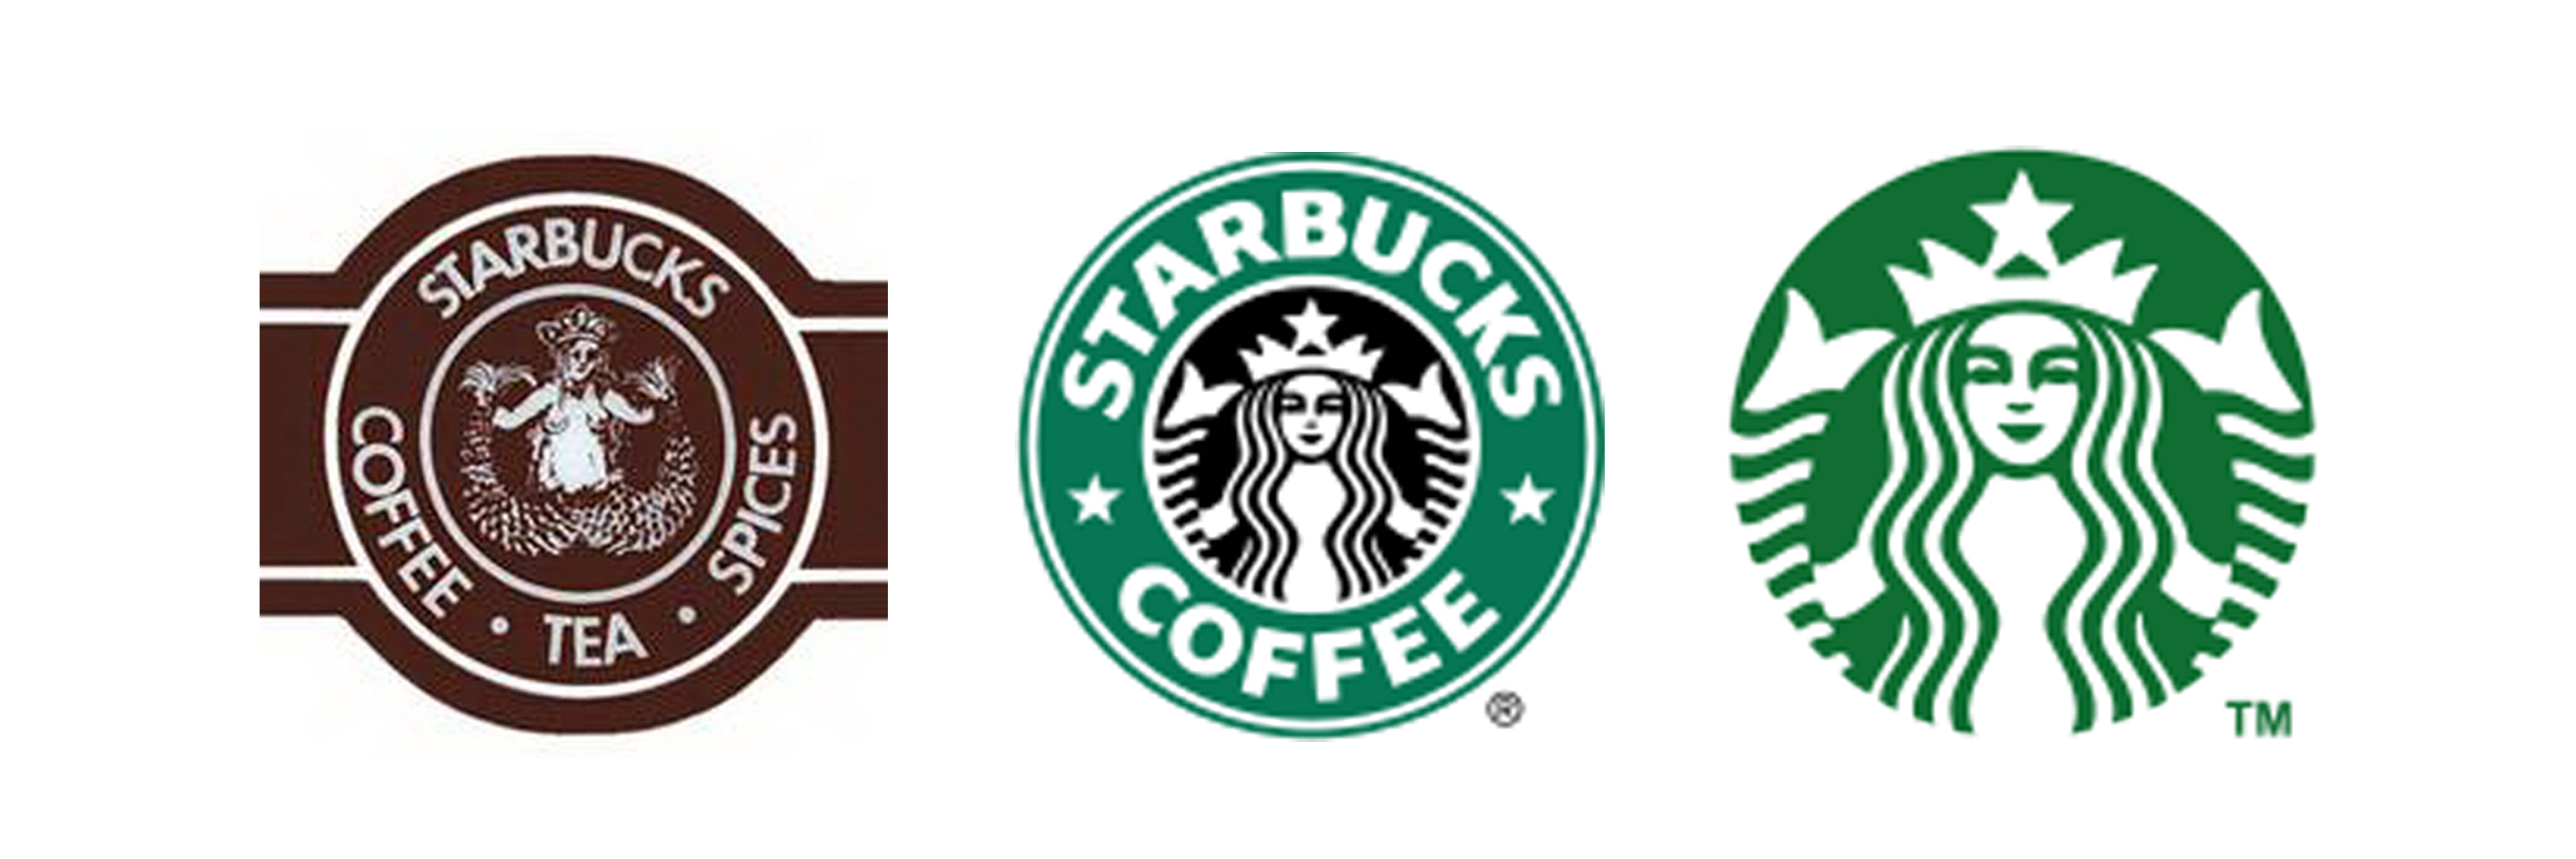 Flip The Old Starbucks Logo Upside Down And It Becomes Satan Clearly